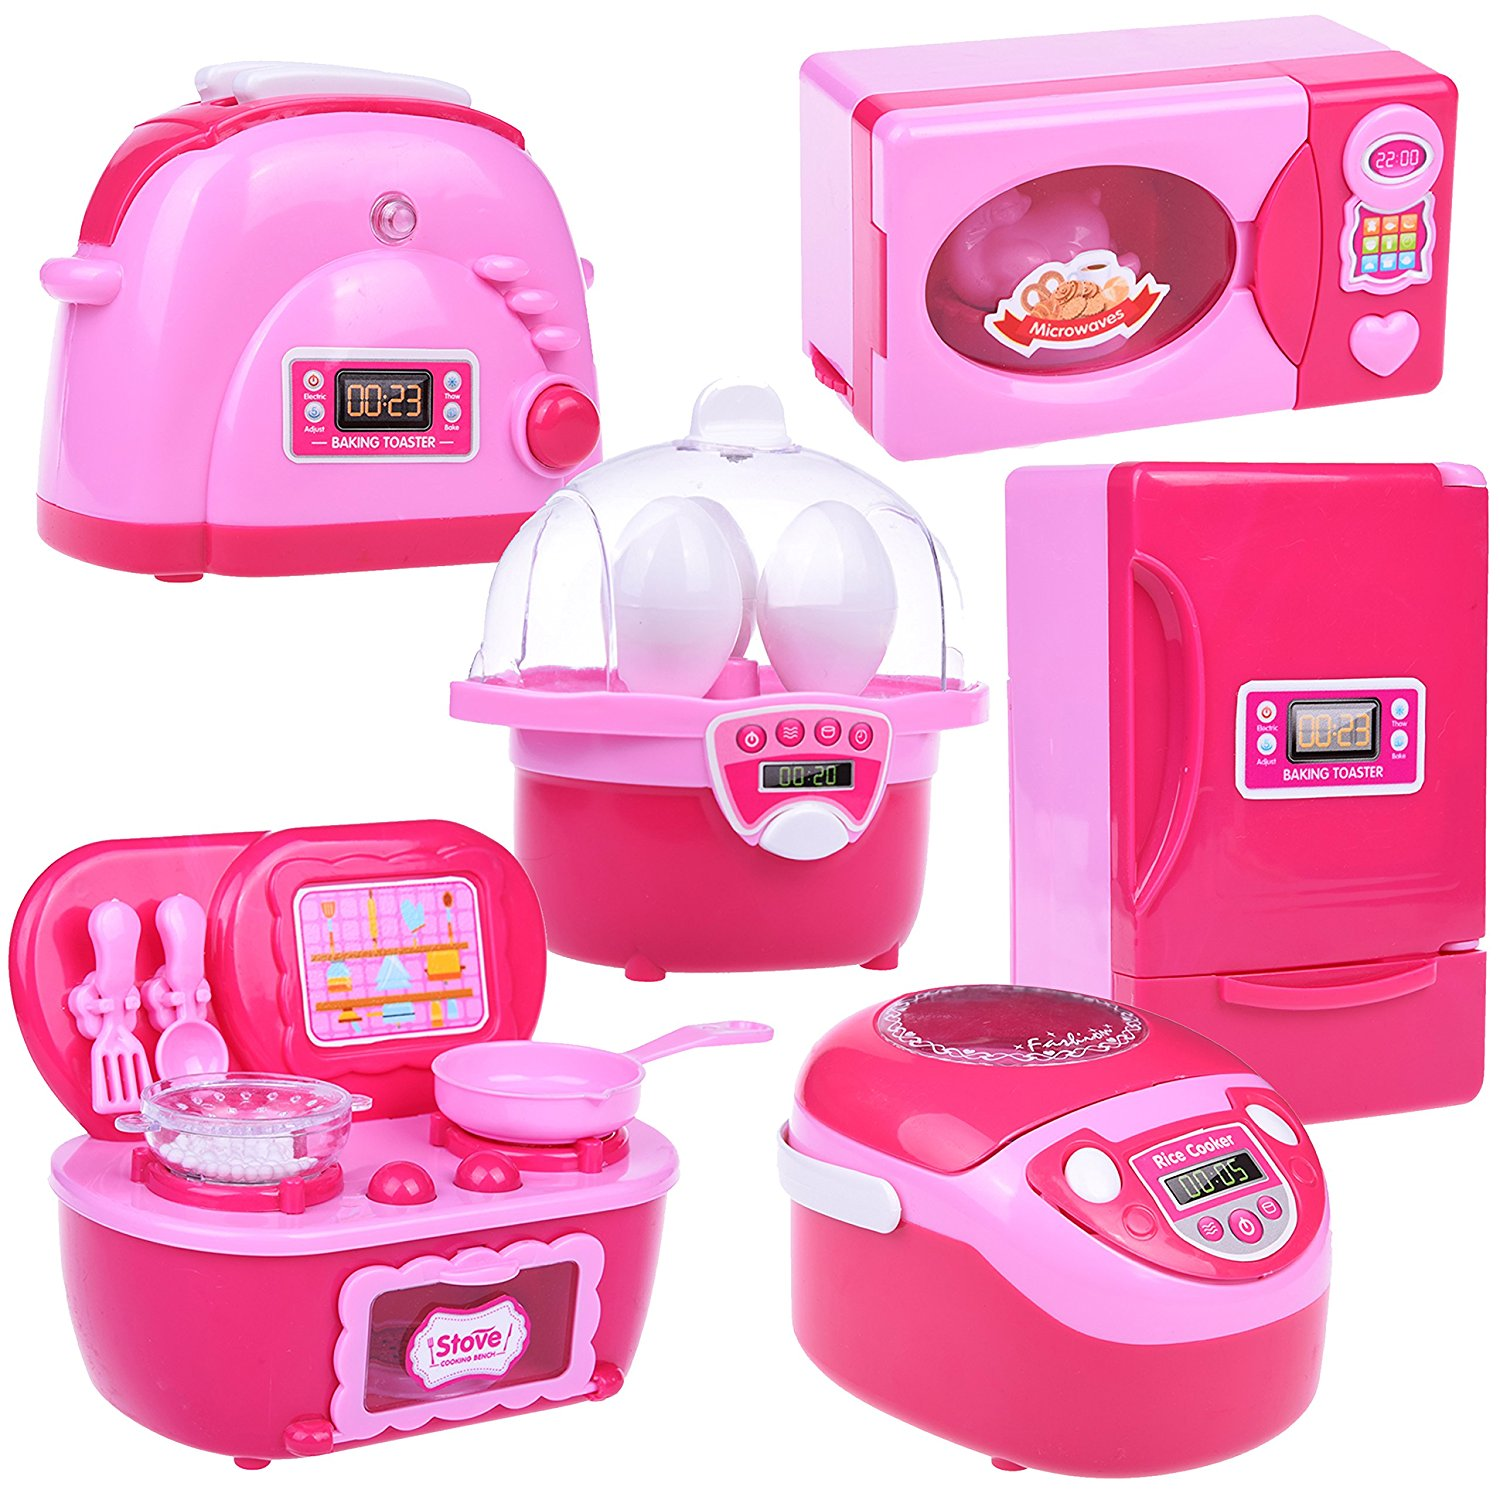 Mini Kitchen Play Set Home Appliances Refrigerator Stove Oven Microwave Toaster Steam